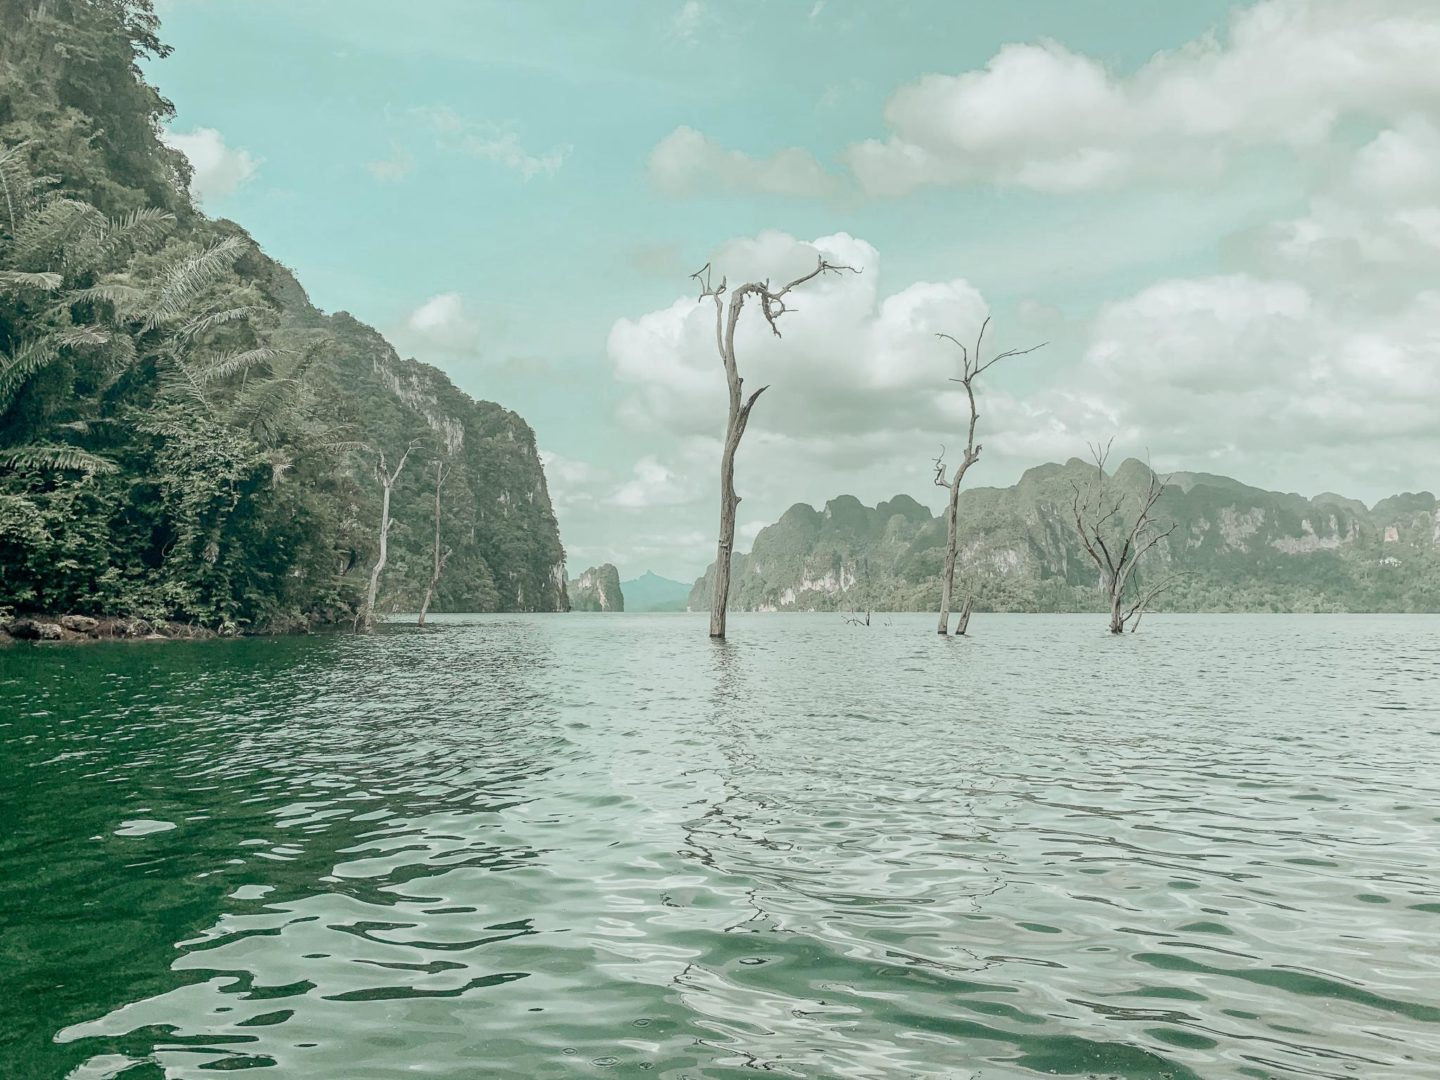 Forest remnants at Cheow Lan Lake can be see above the emerald green lake itself